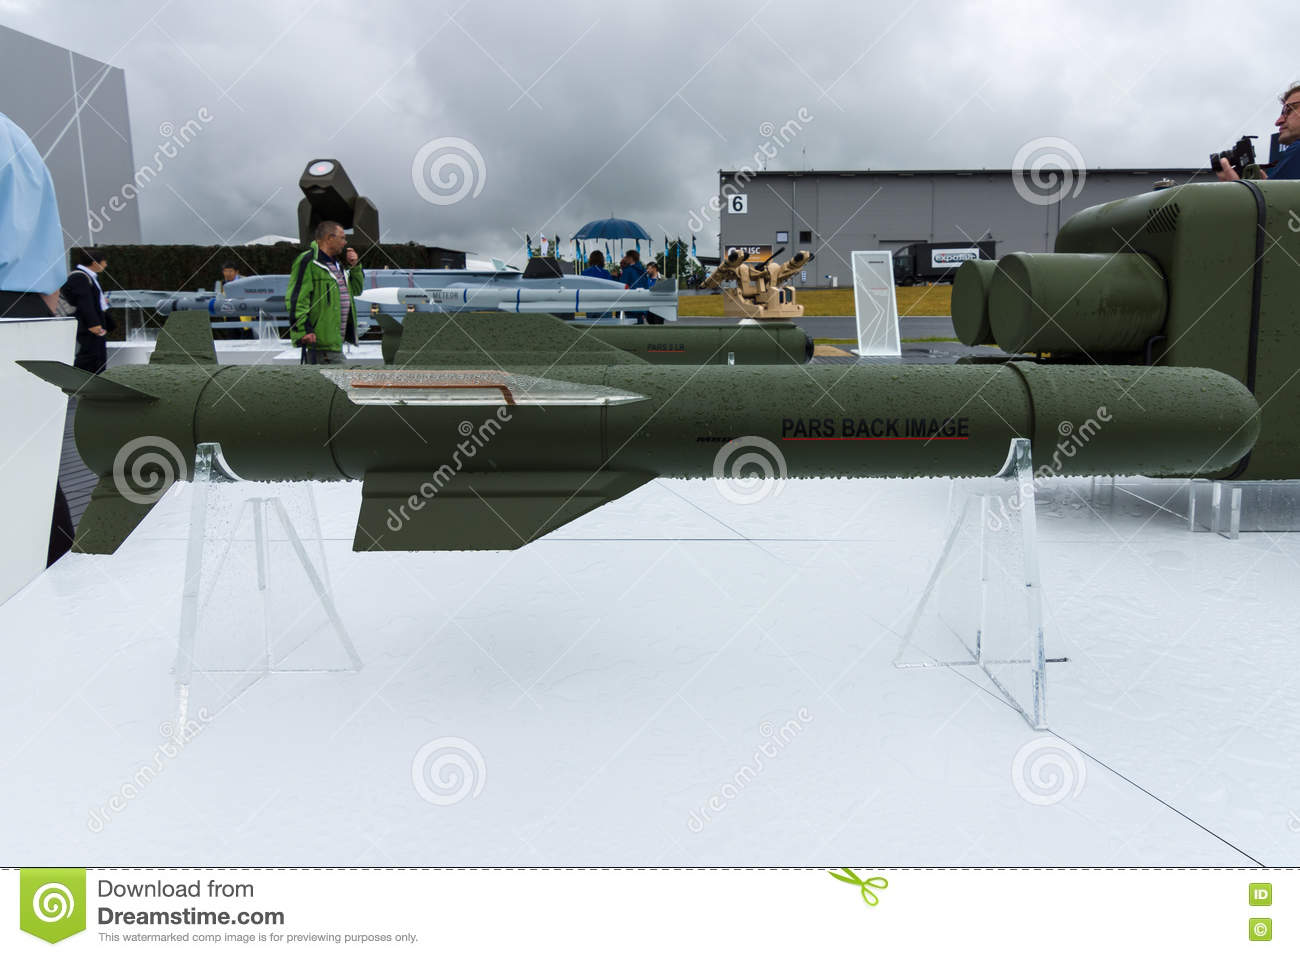 Luft boden rakete stock photos royalty free stock images for Boden luft rakete